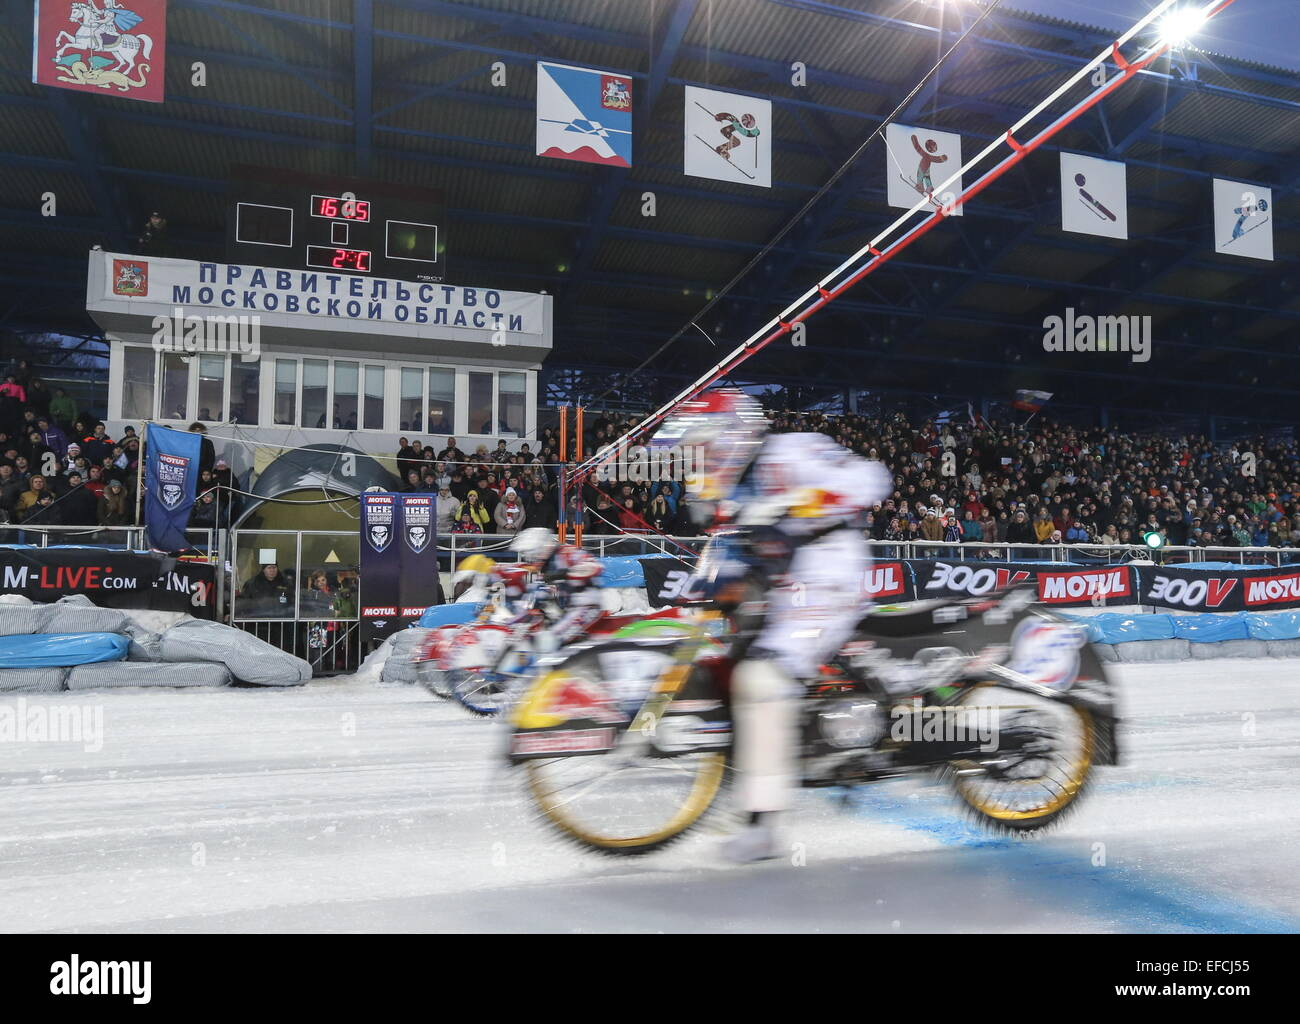 Moscow Region, Russia. 31st Jan, 2015. Riders compete in the firsl final of the 2015 MOTUL FIM Ice Speedway Gladiators Stock Photo